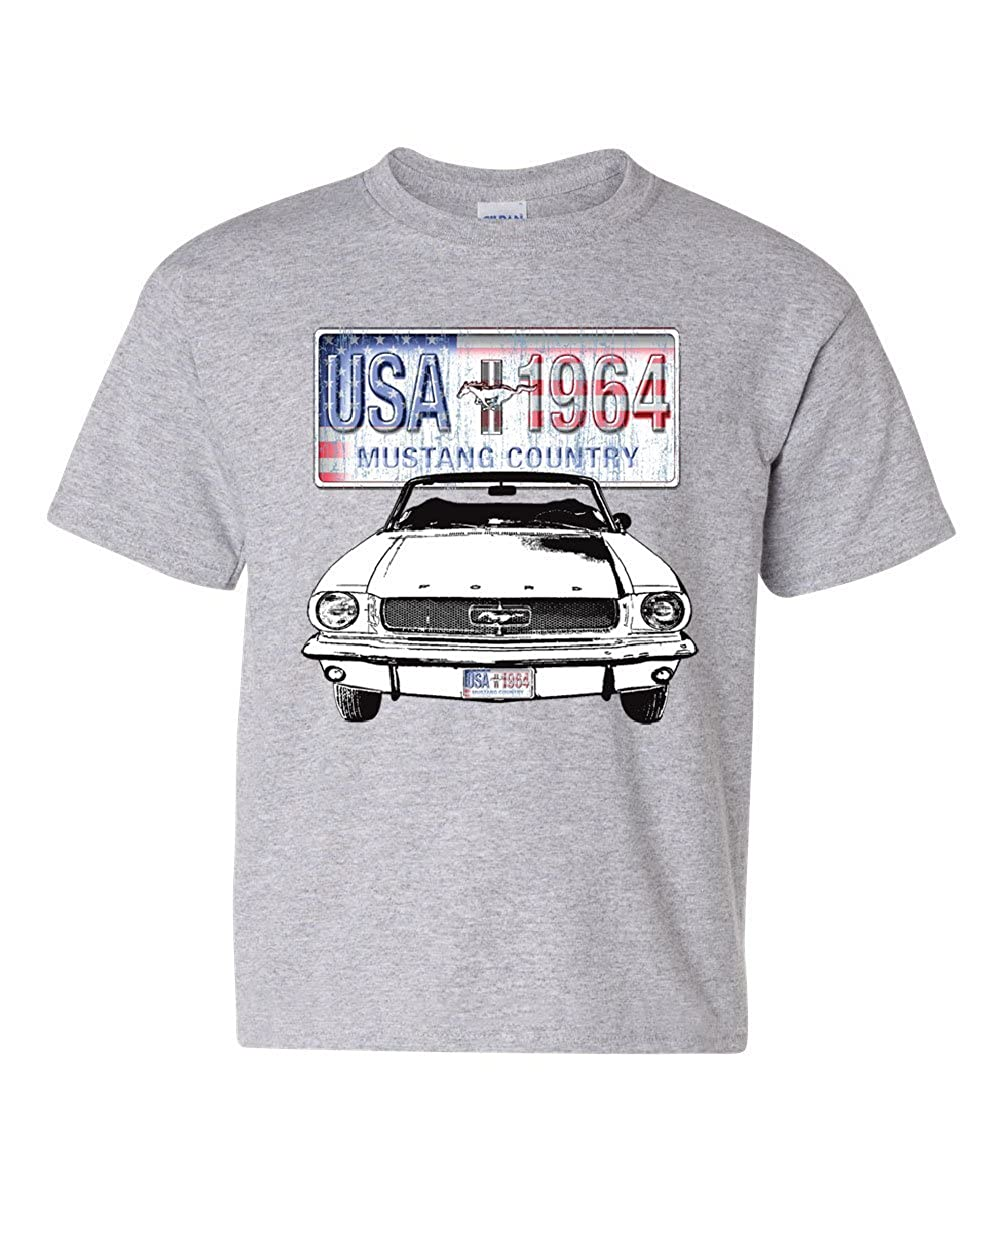 Amazon.com: Mustang Country 1964 Youth T-Shirt Ford Legend USA American Classic Kids Tee: Clothing